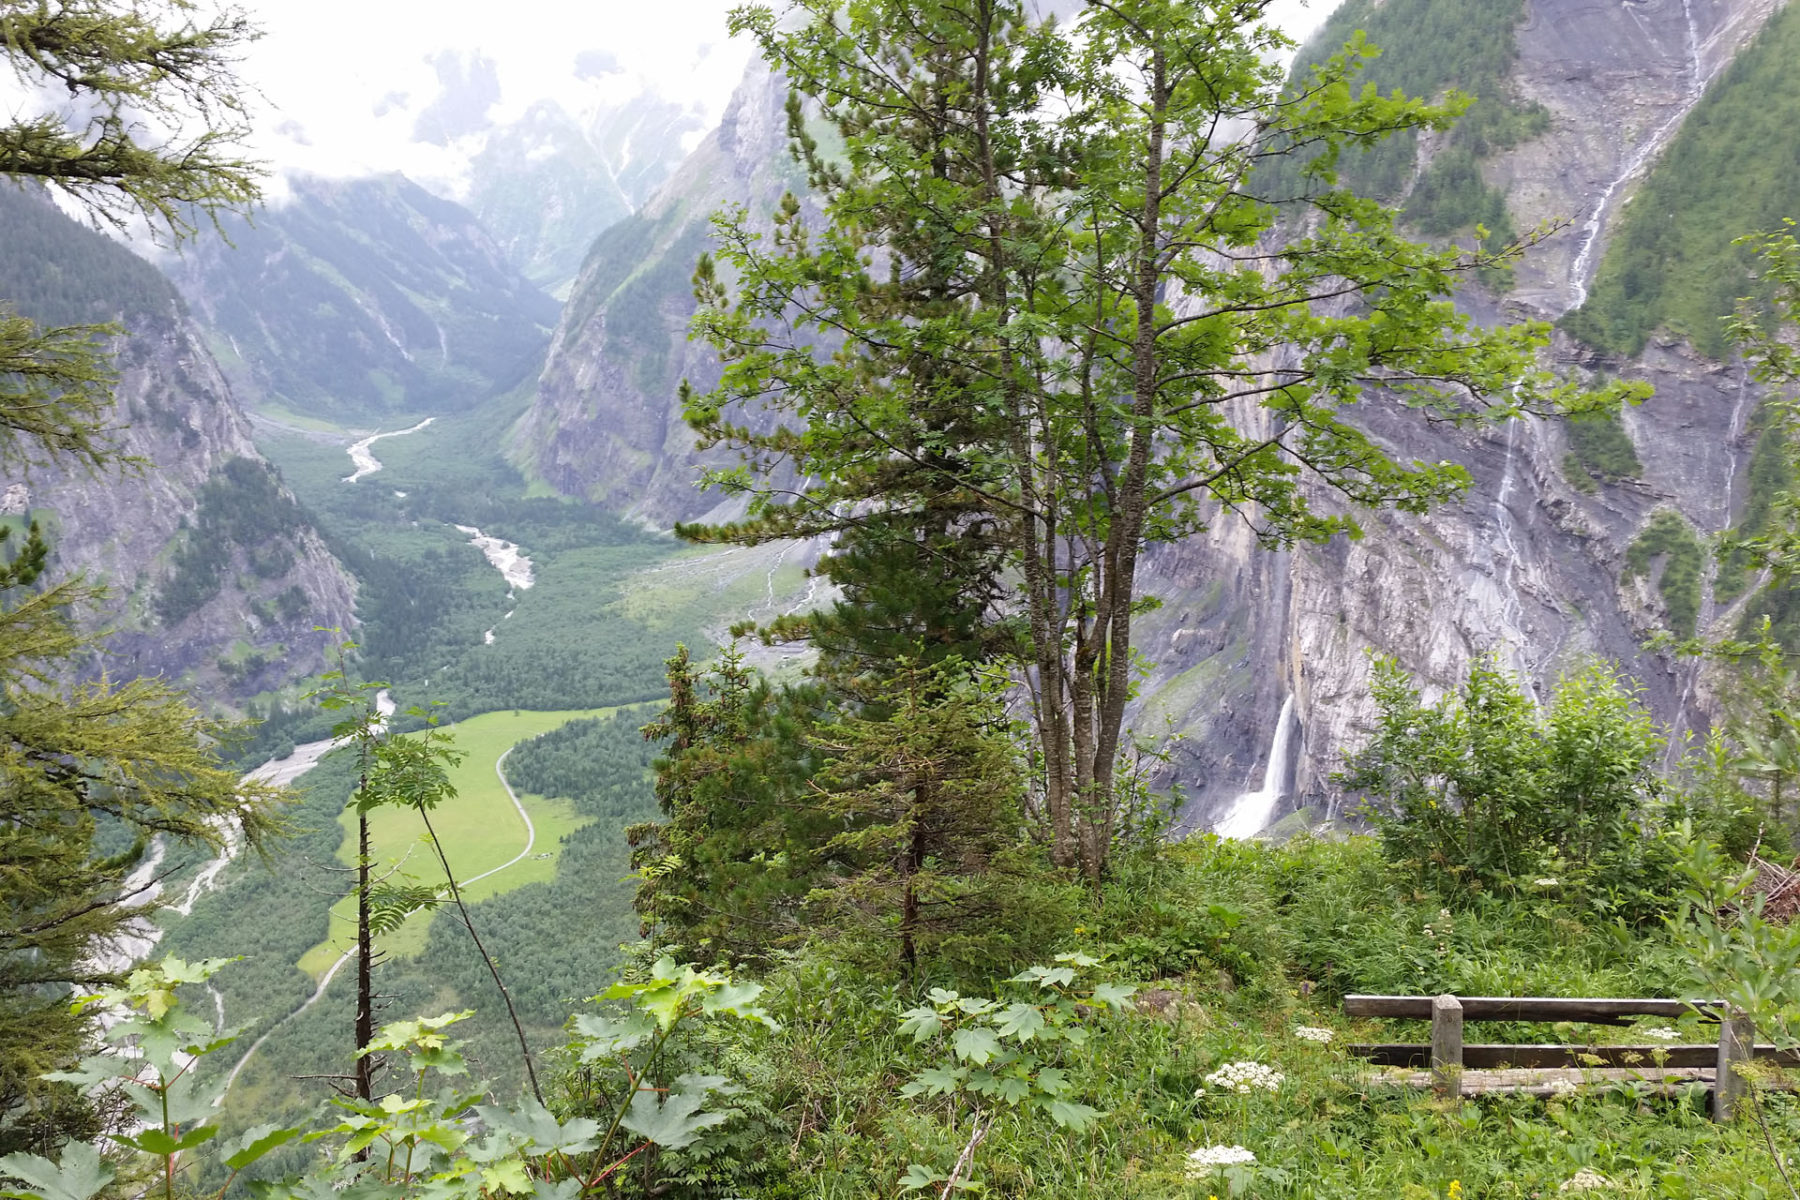 A bench overlooking the Gasterntal valley near Kandersteg